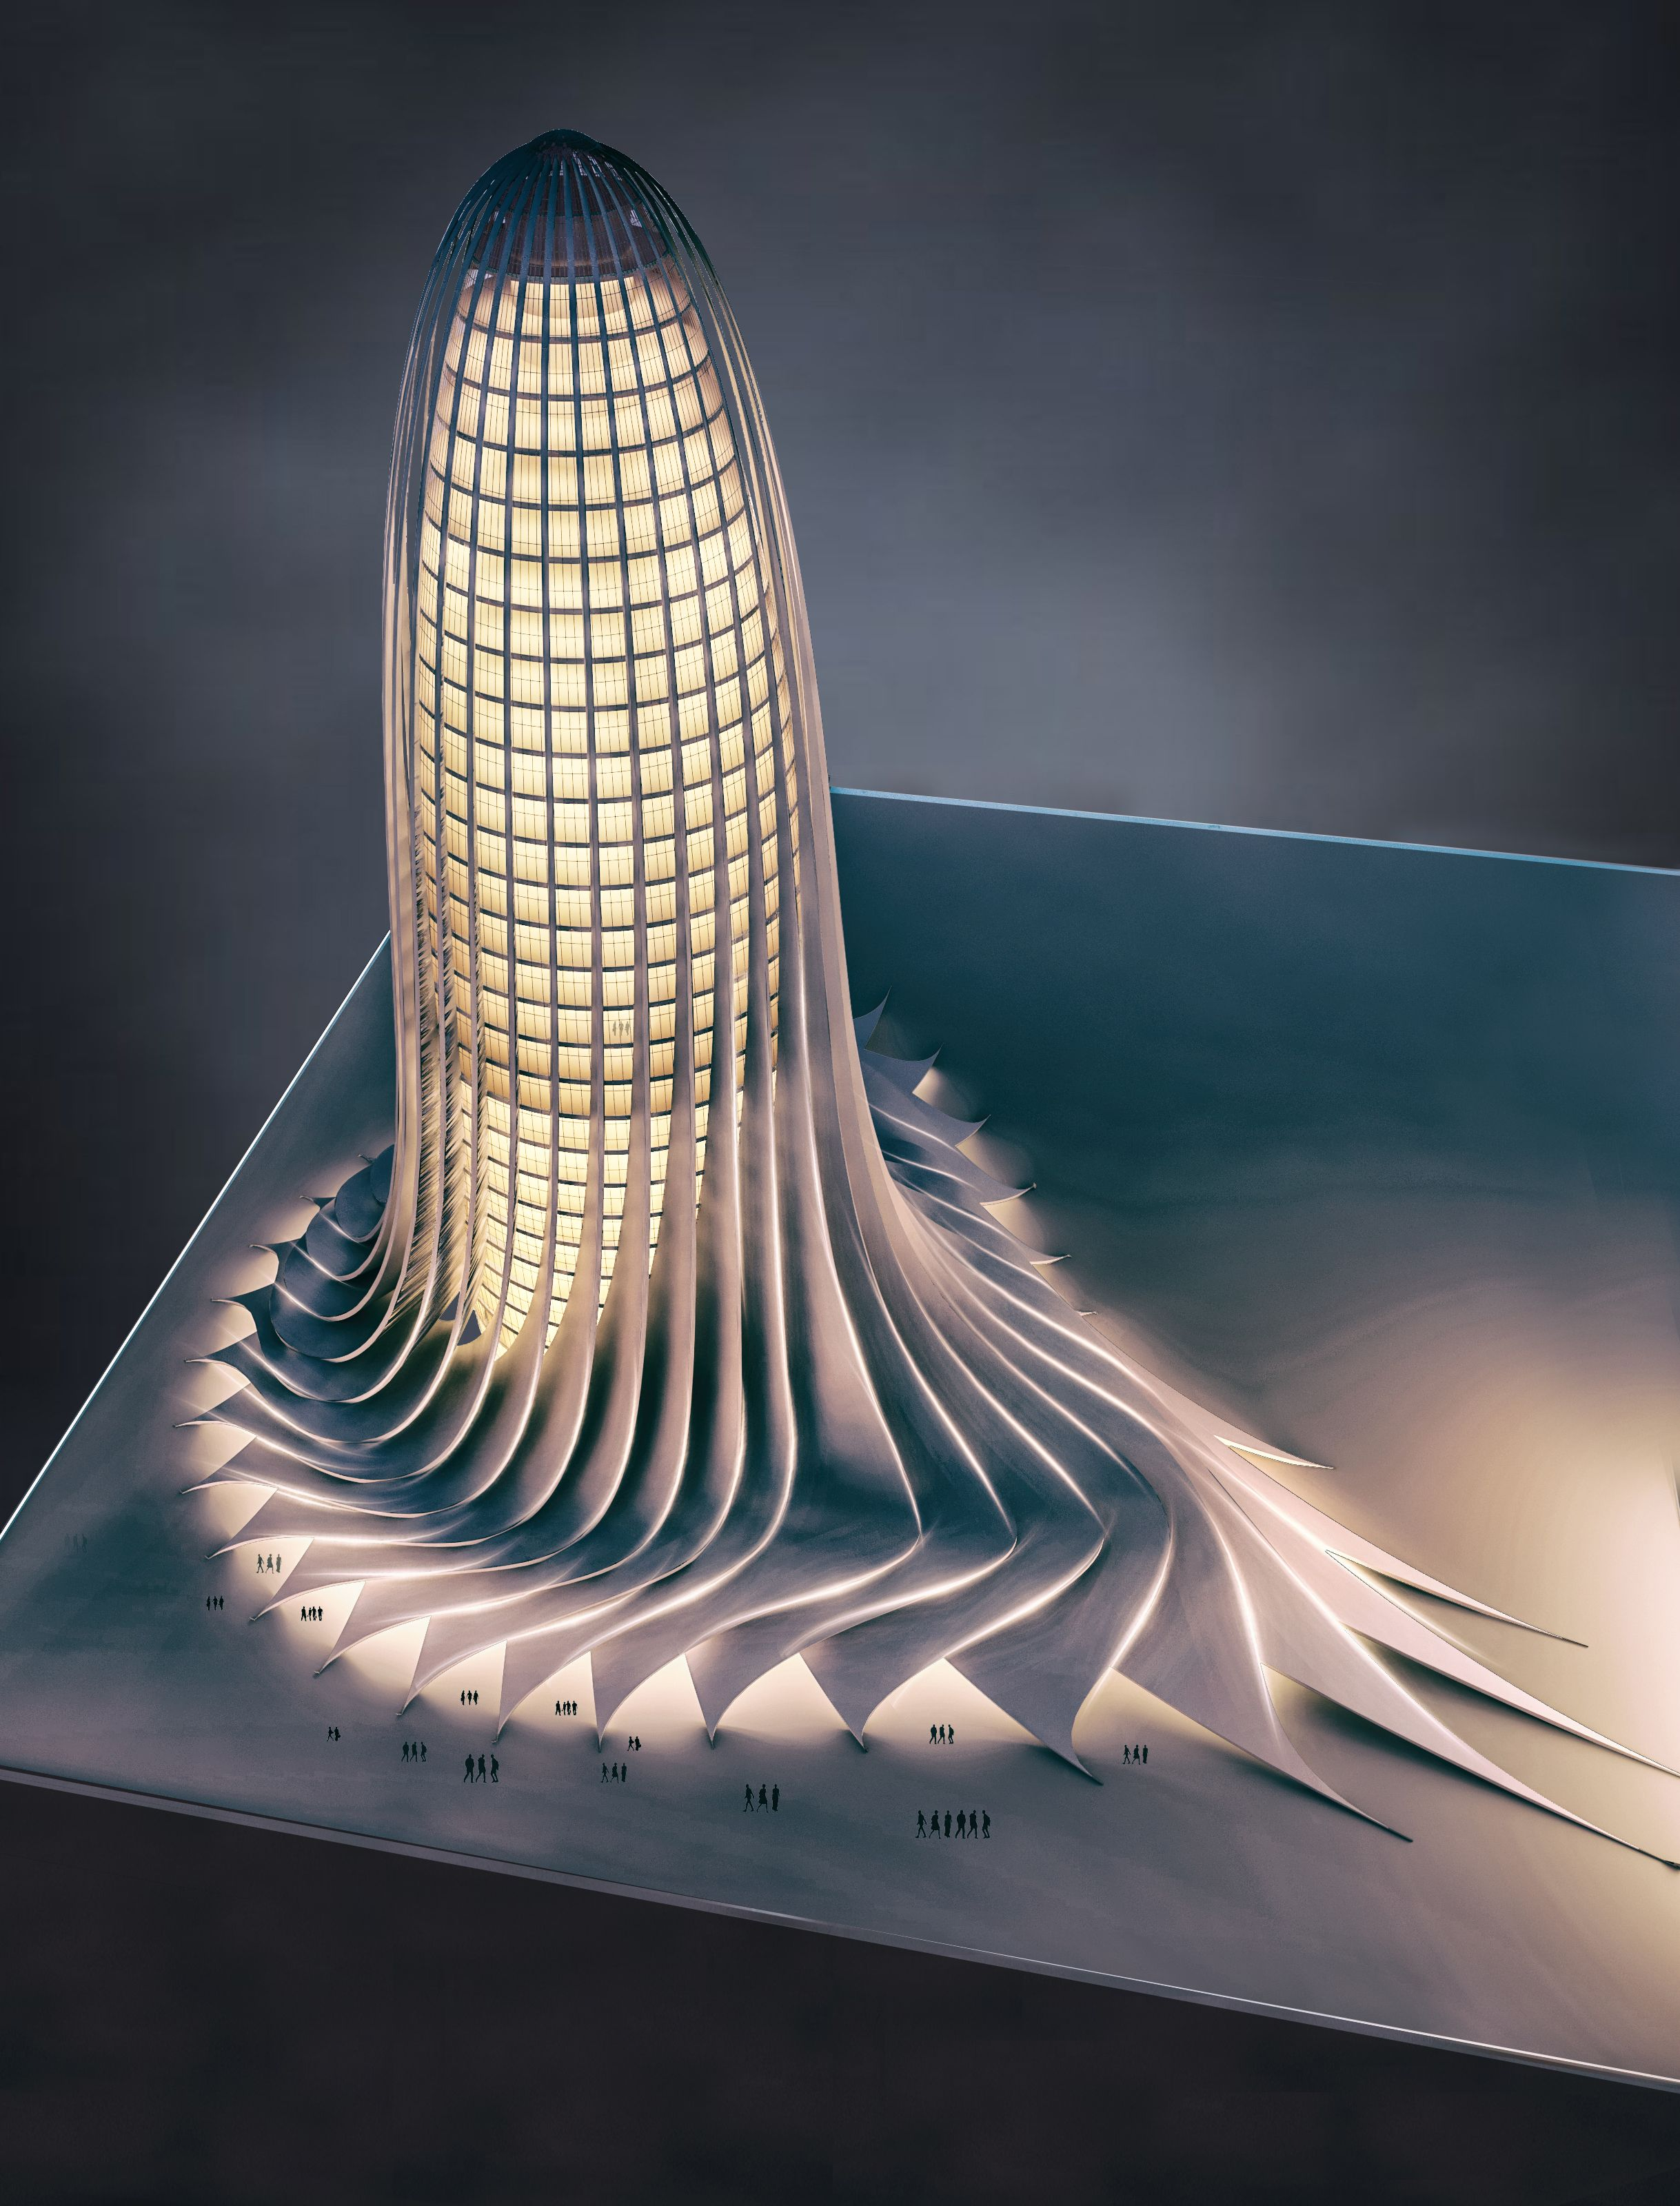 Office tower design and visualization by Mohanad Albasha